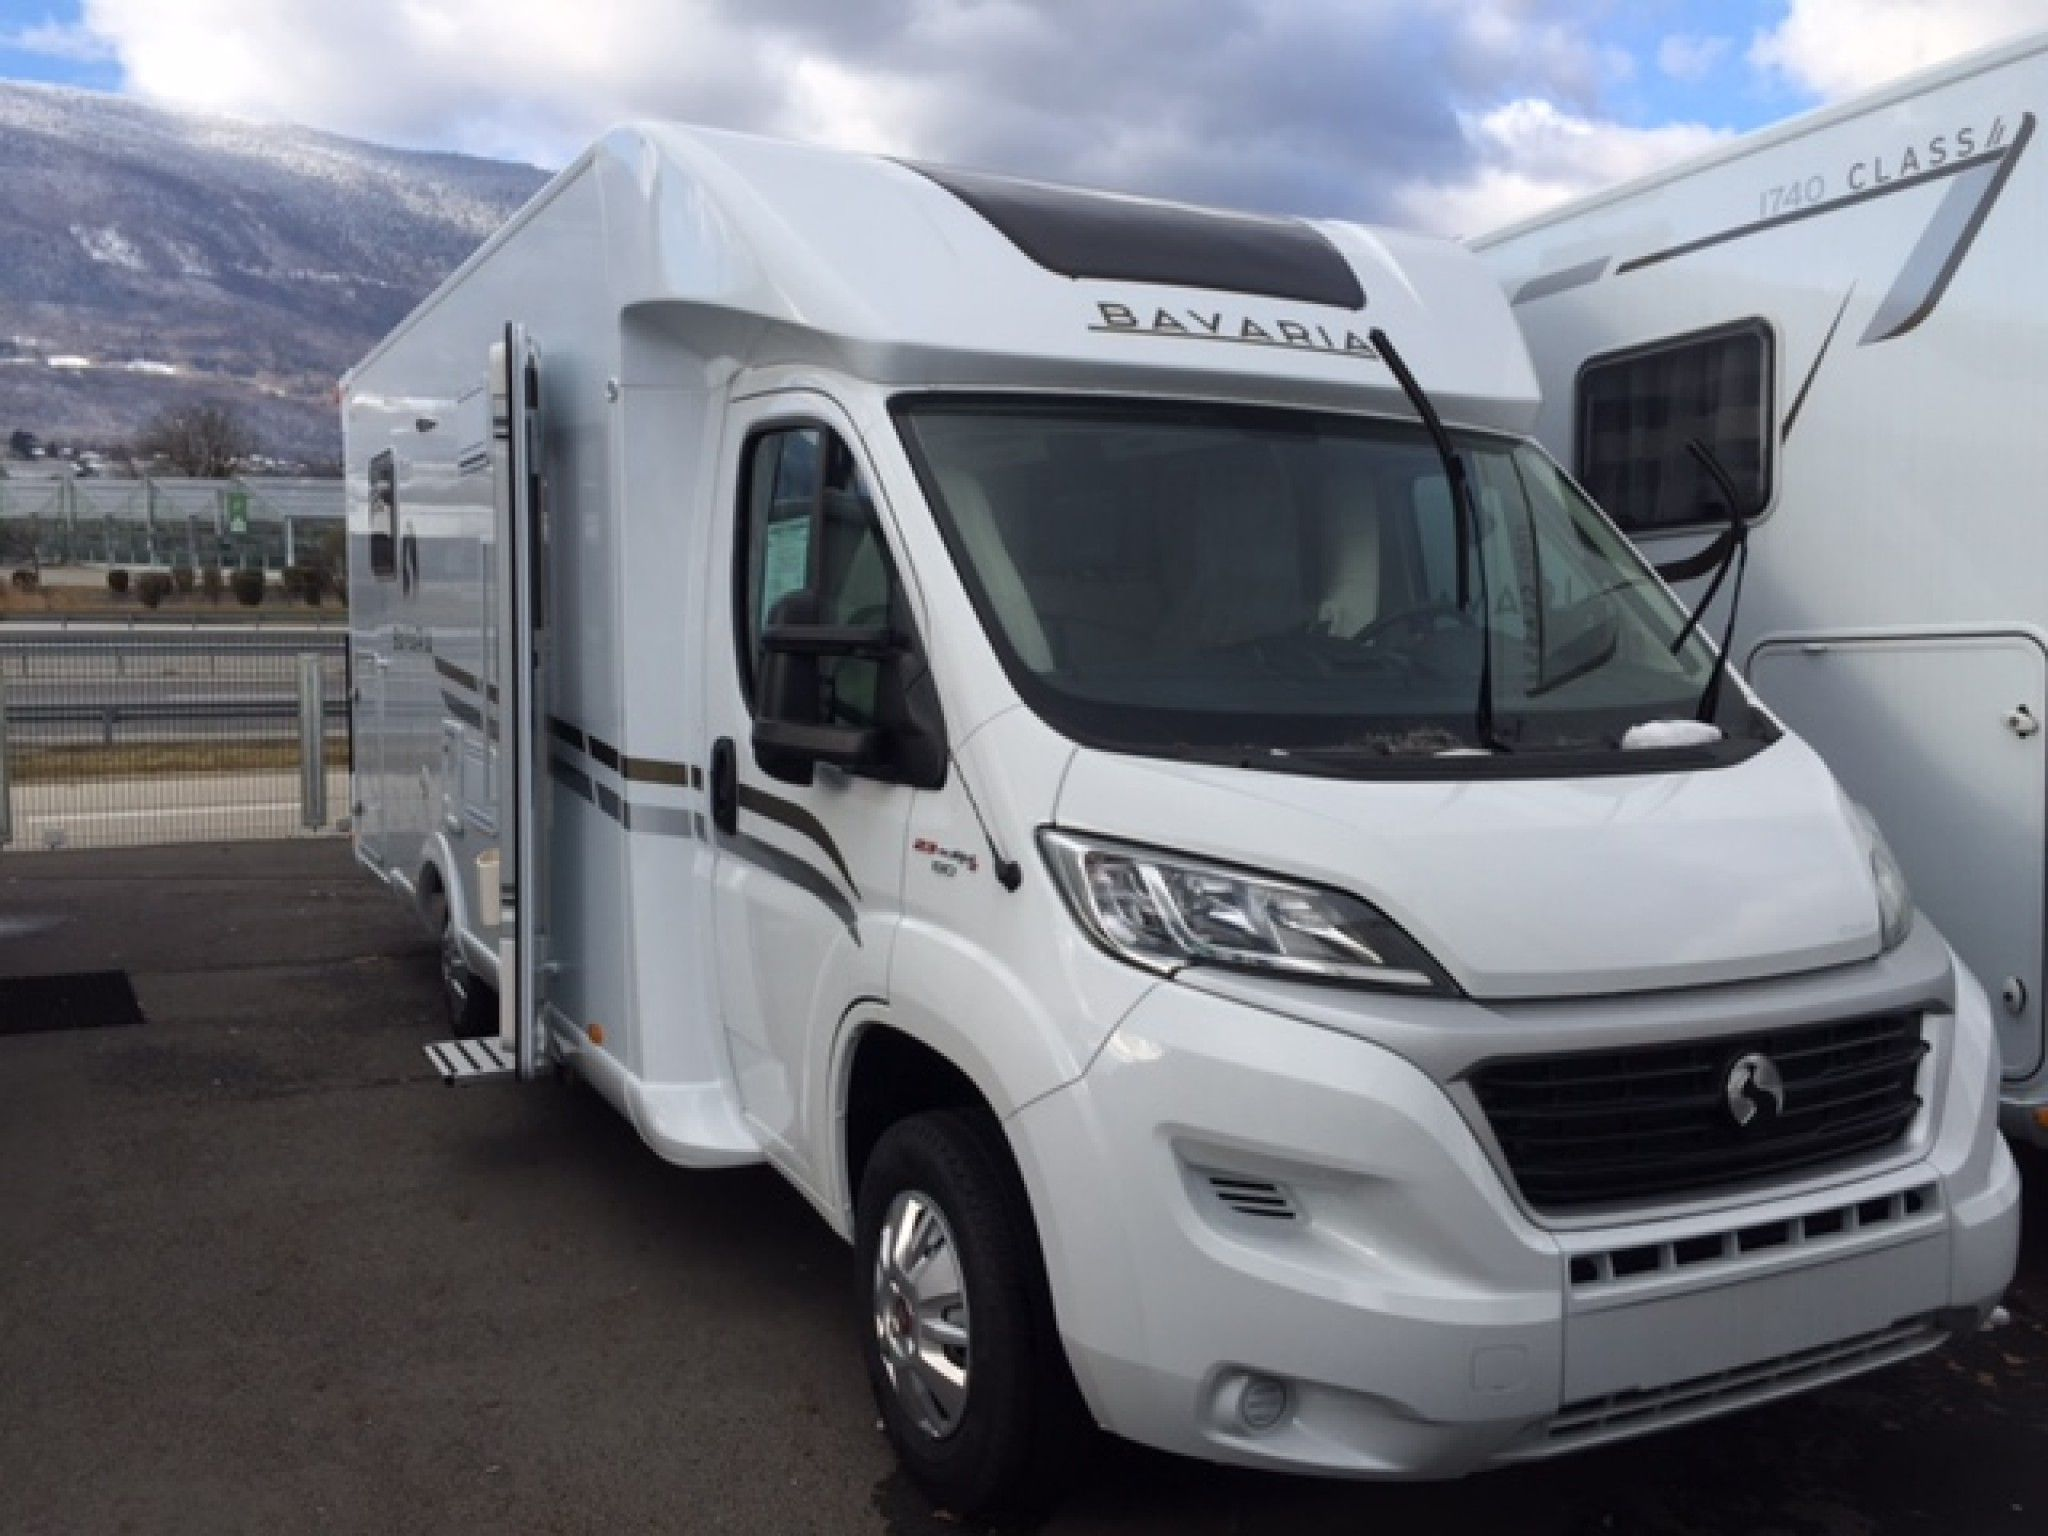 Camping-car BAVARIA T 746 LC STYLE